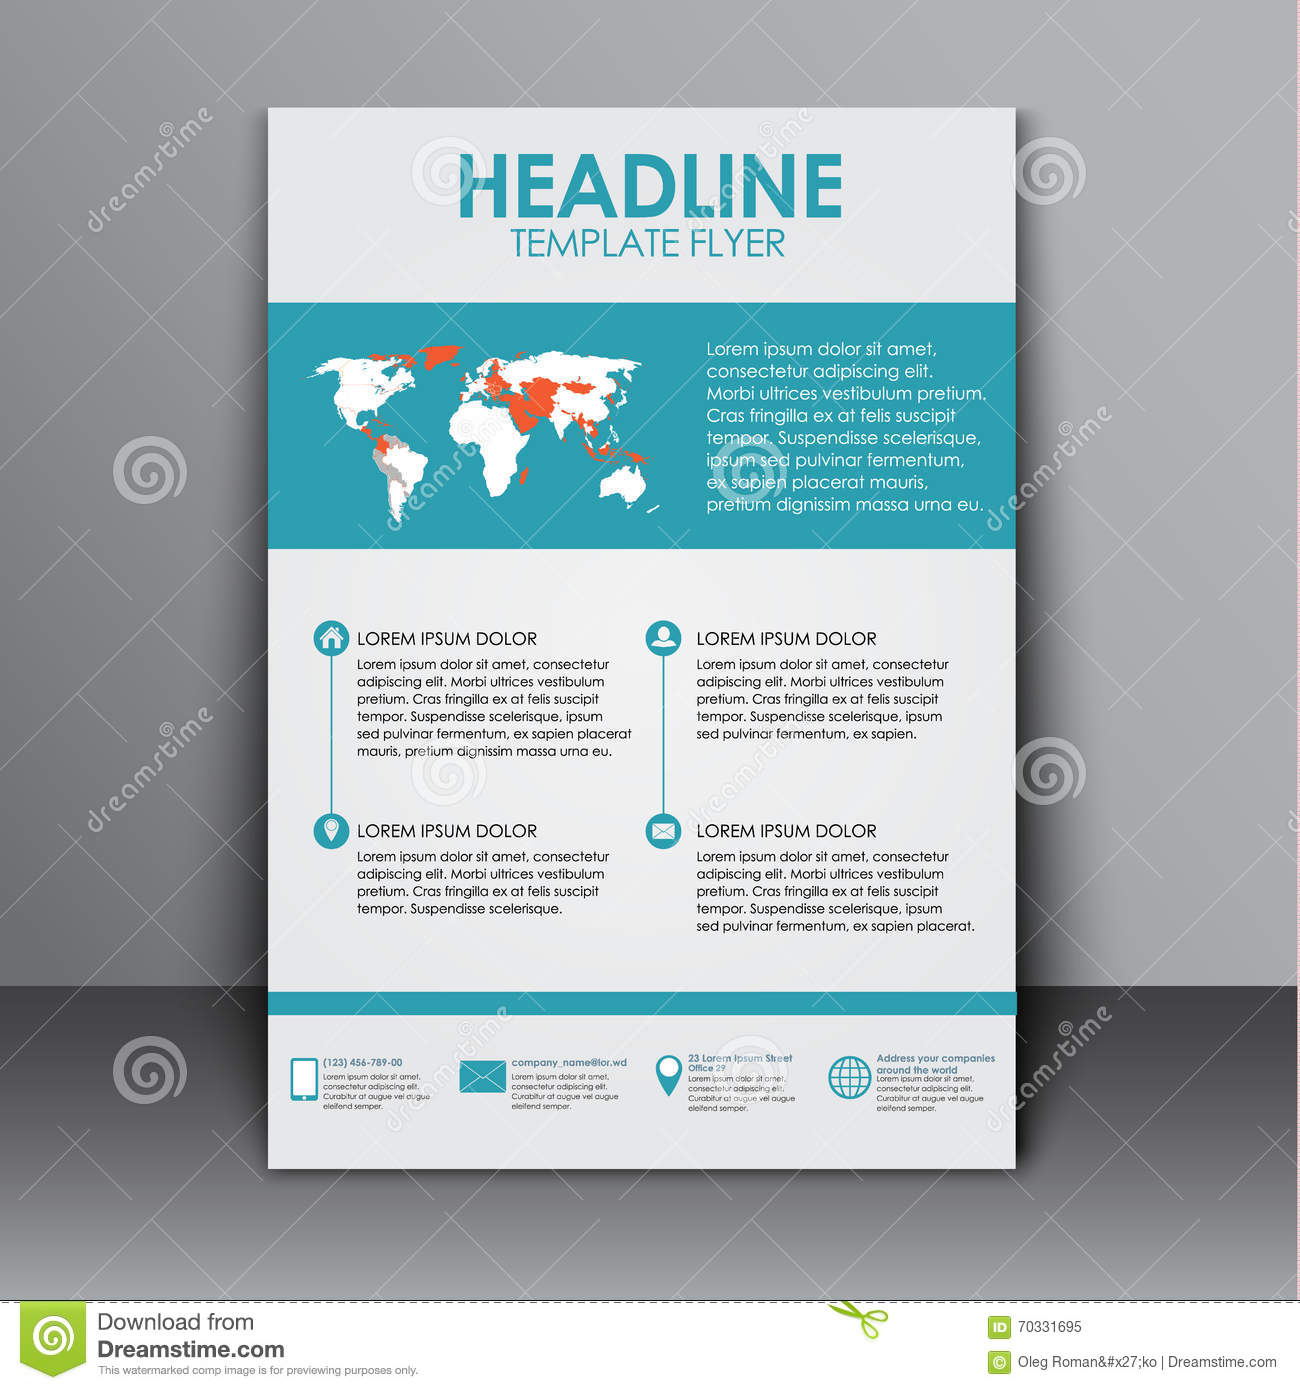 template flyer information for advertising stock vector template flyer information for advertising